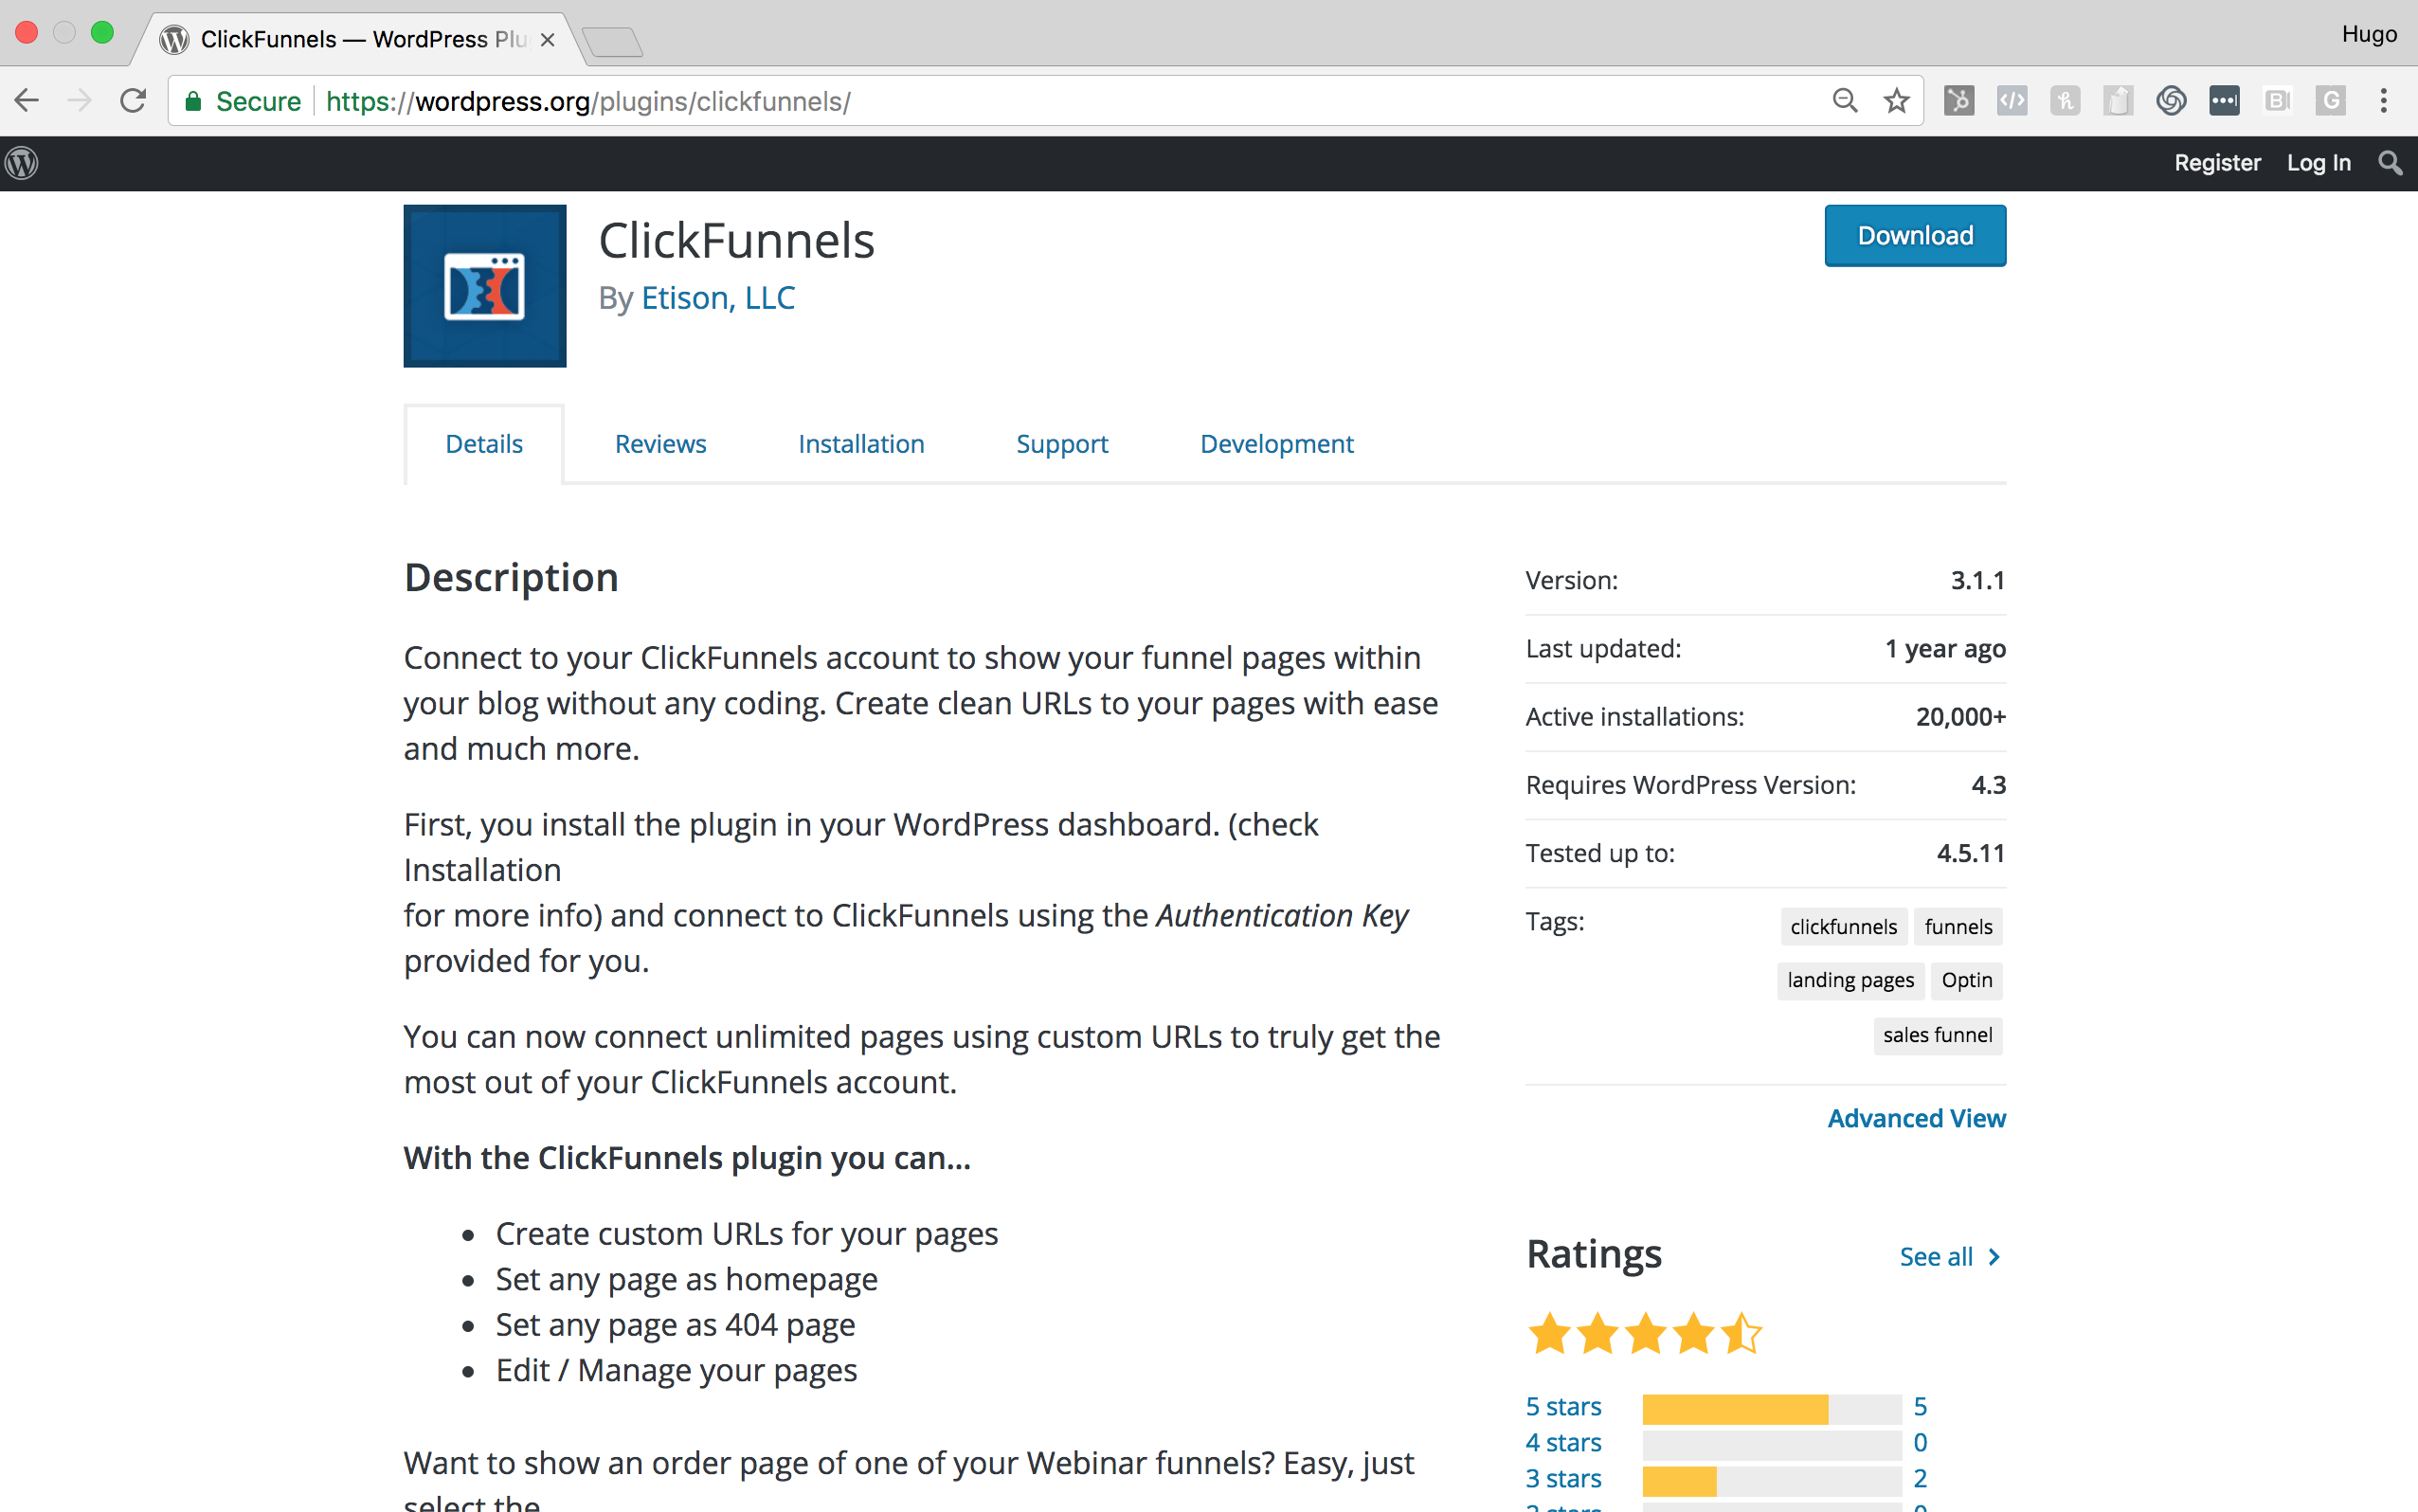 How To Add A Personal Form To Clickfunnels